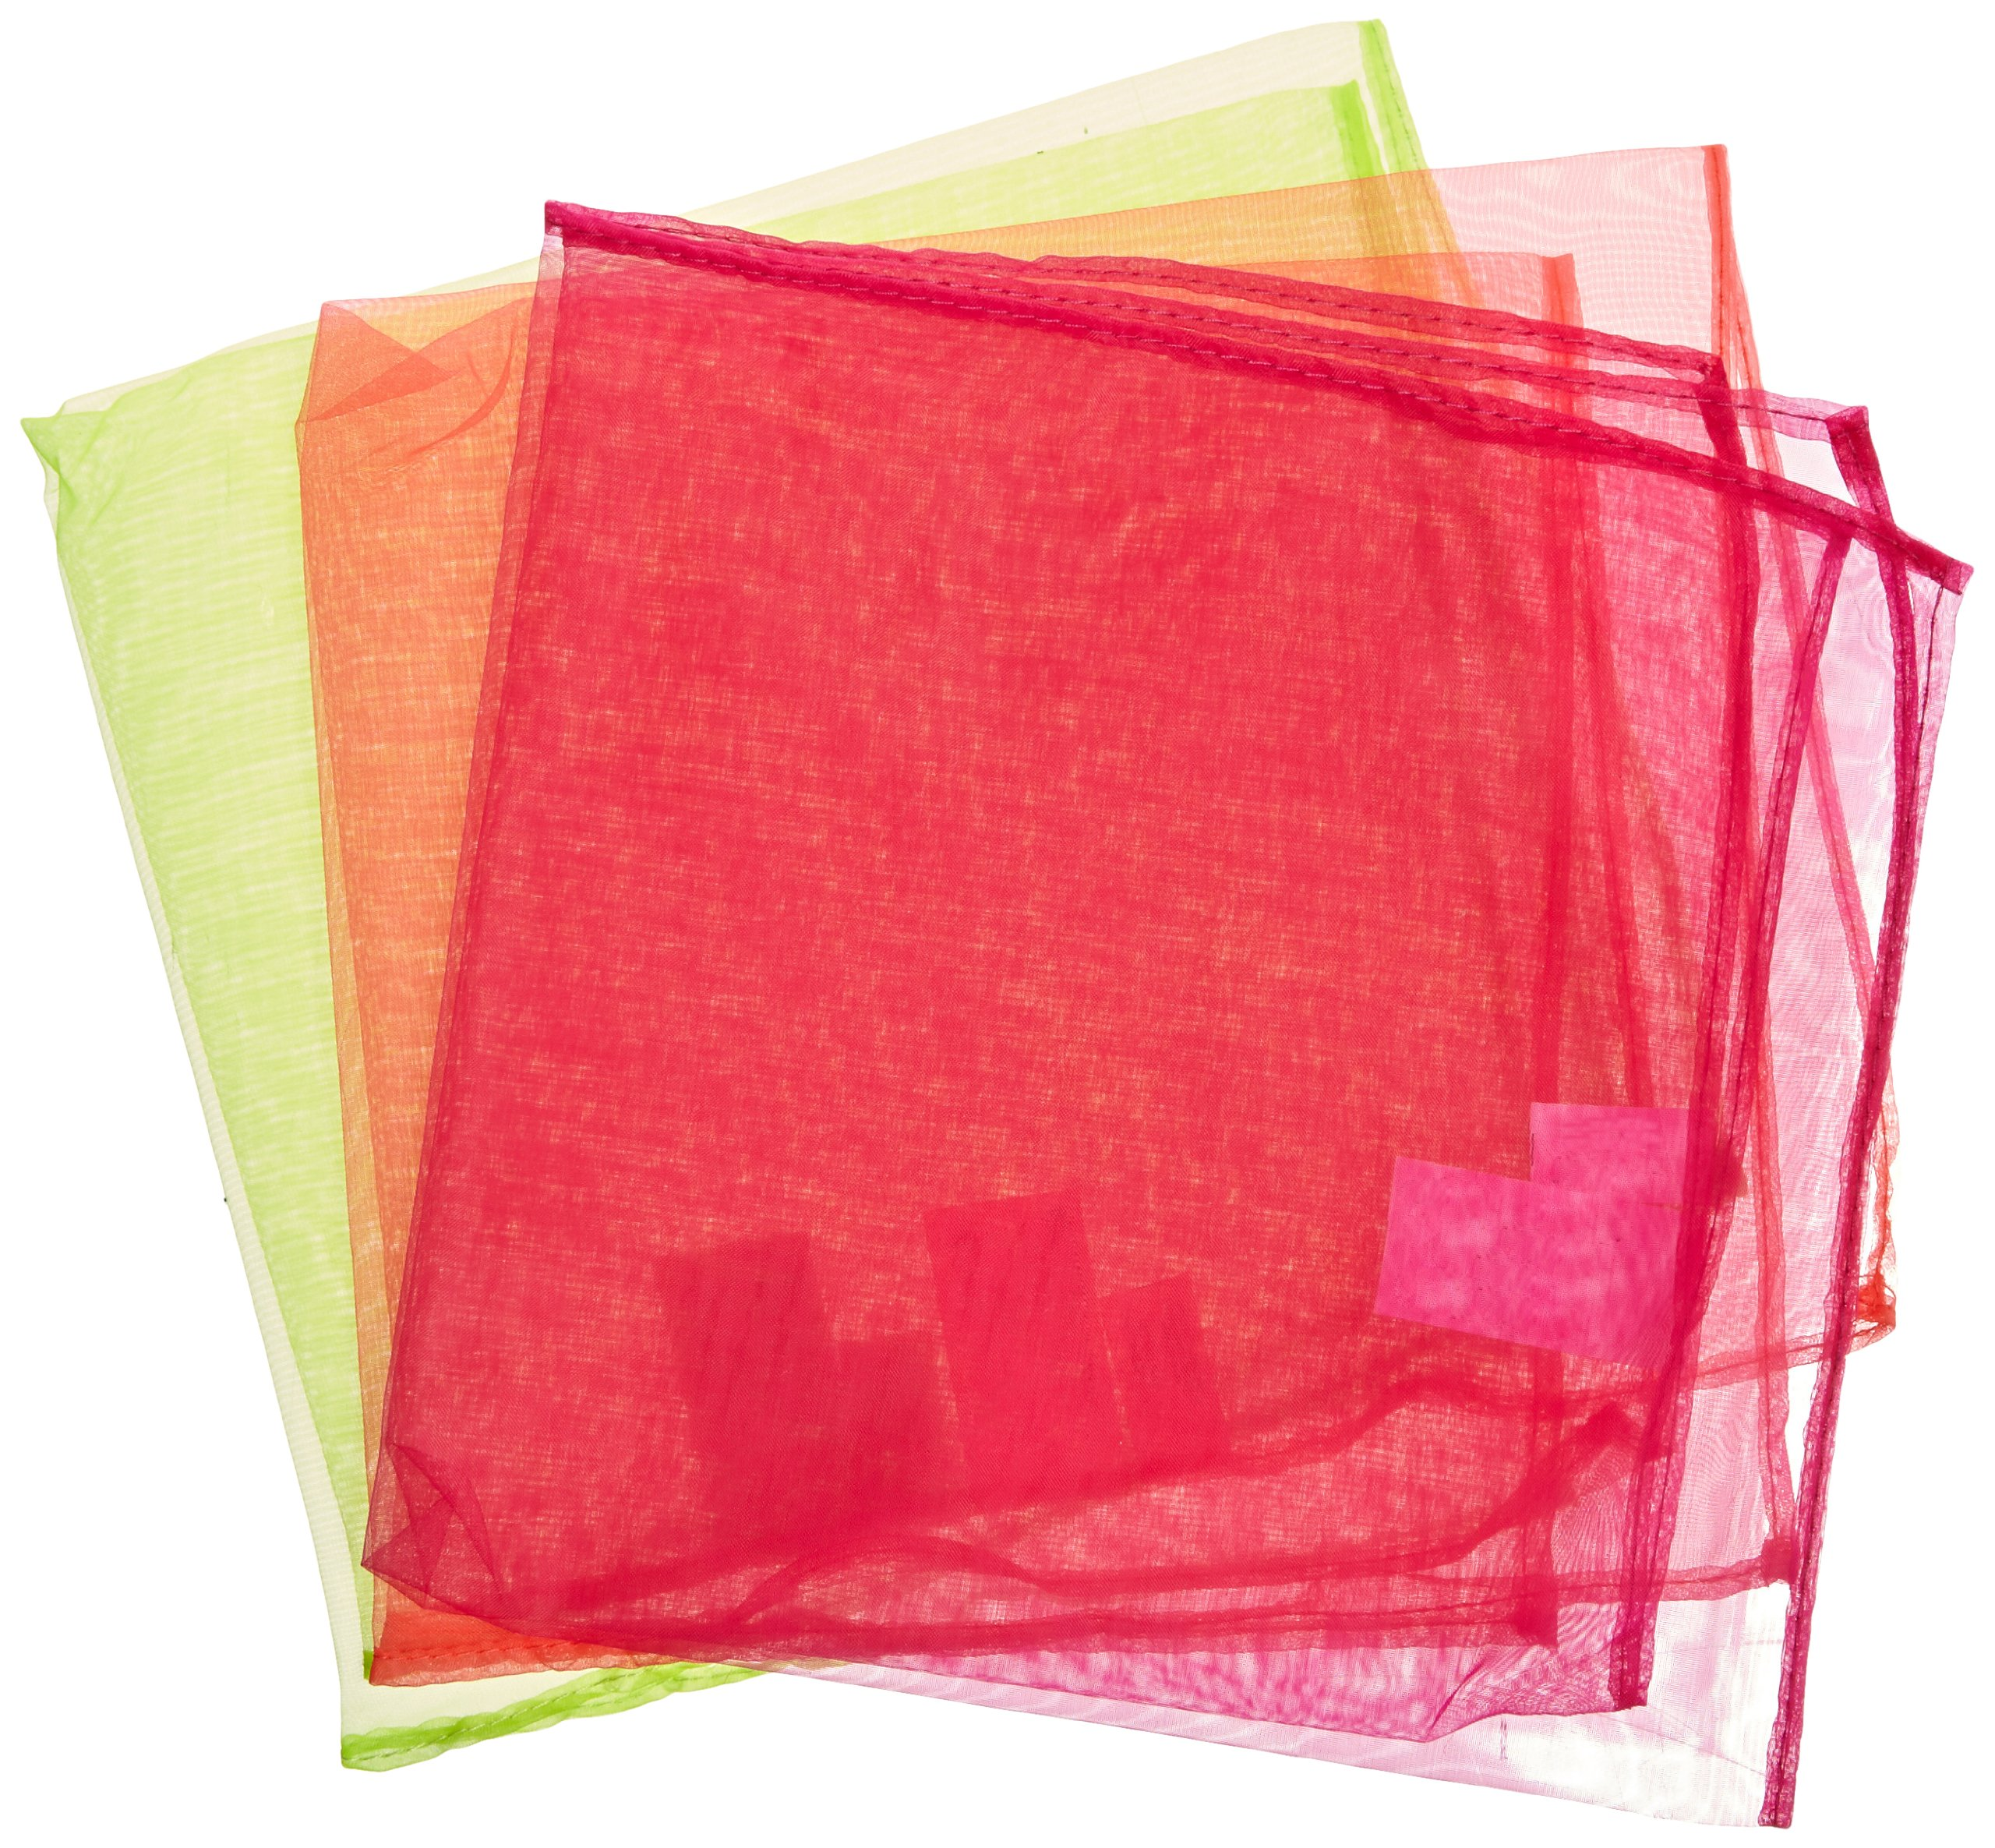 Juggletime Nylon Juggling Scarves with Instructions - Set of 108 - Assorted Neon Colors